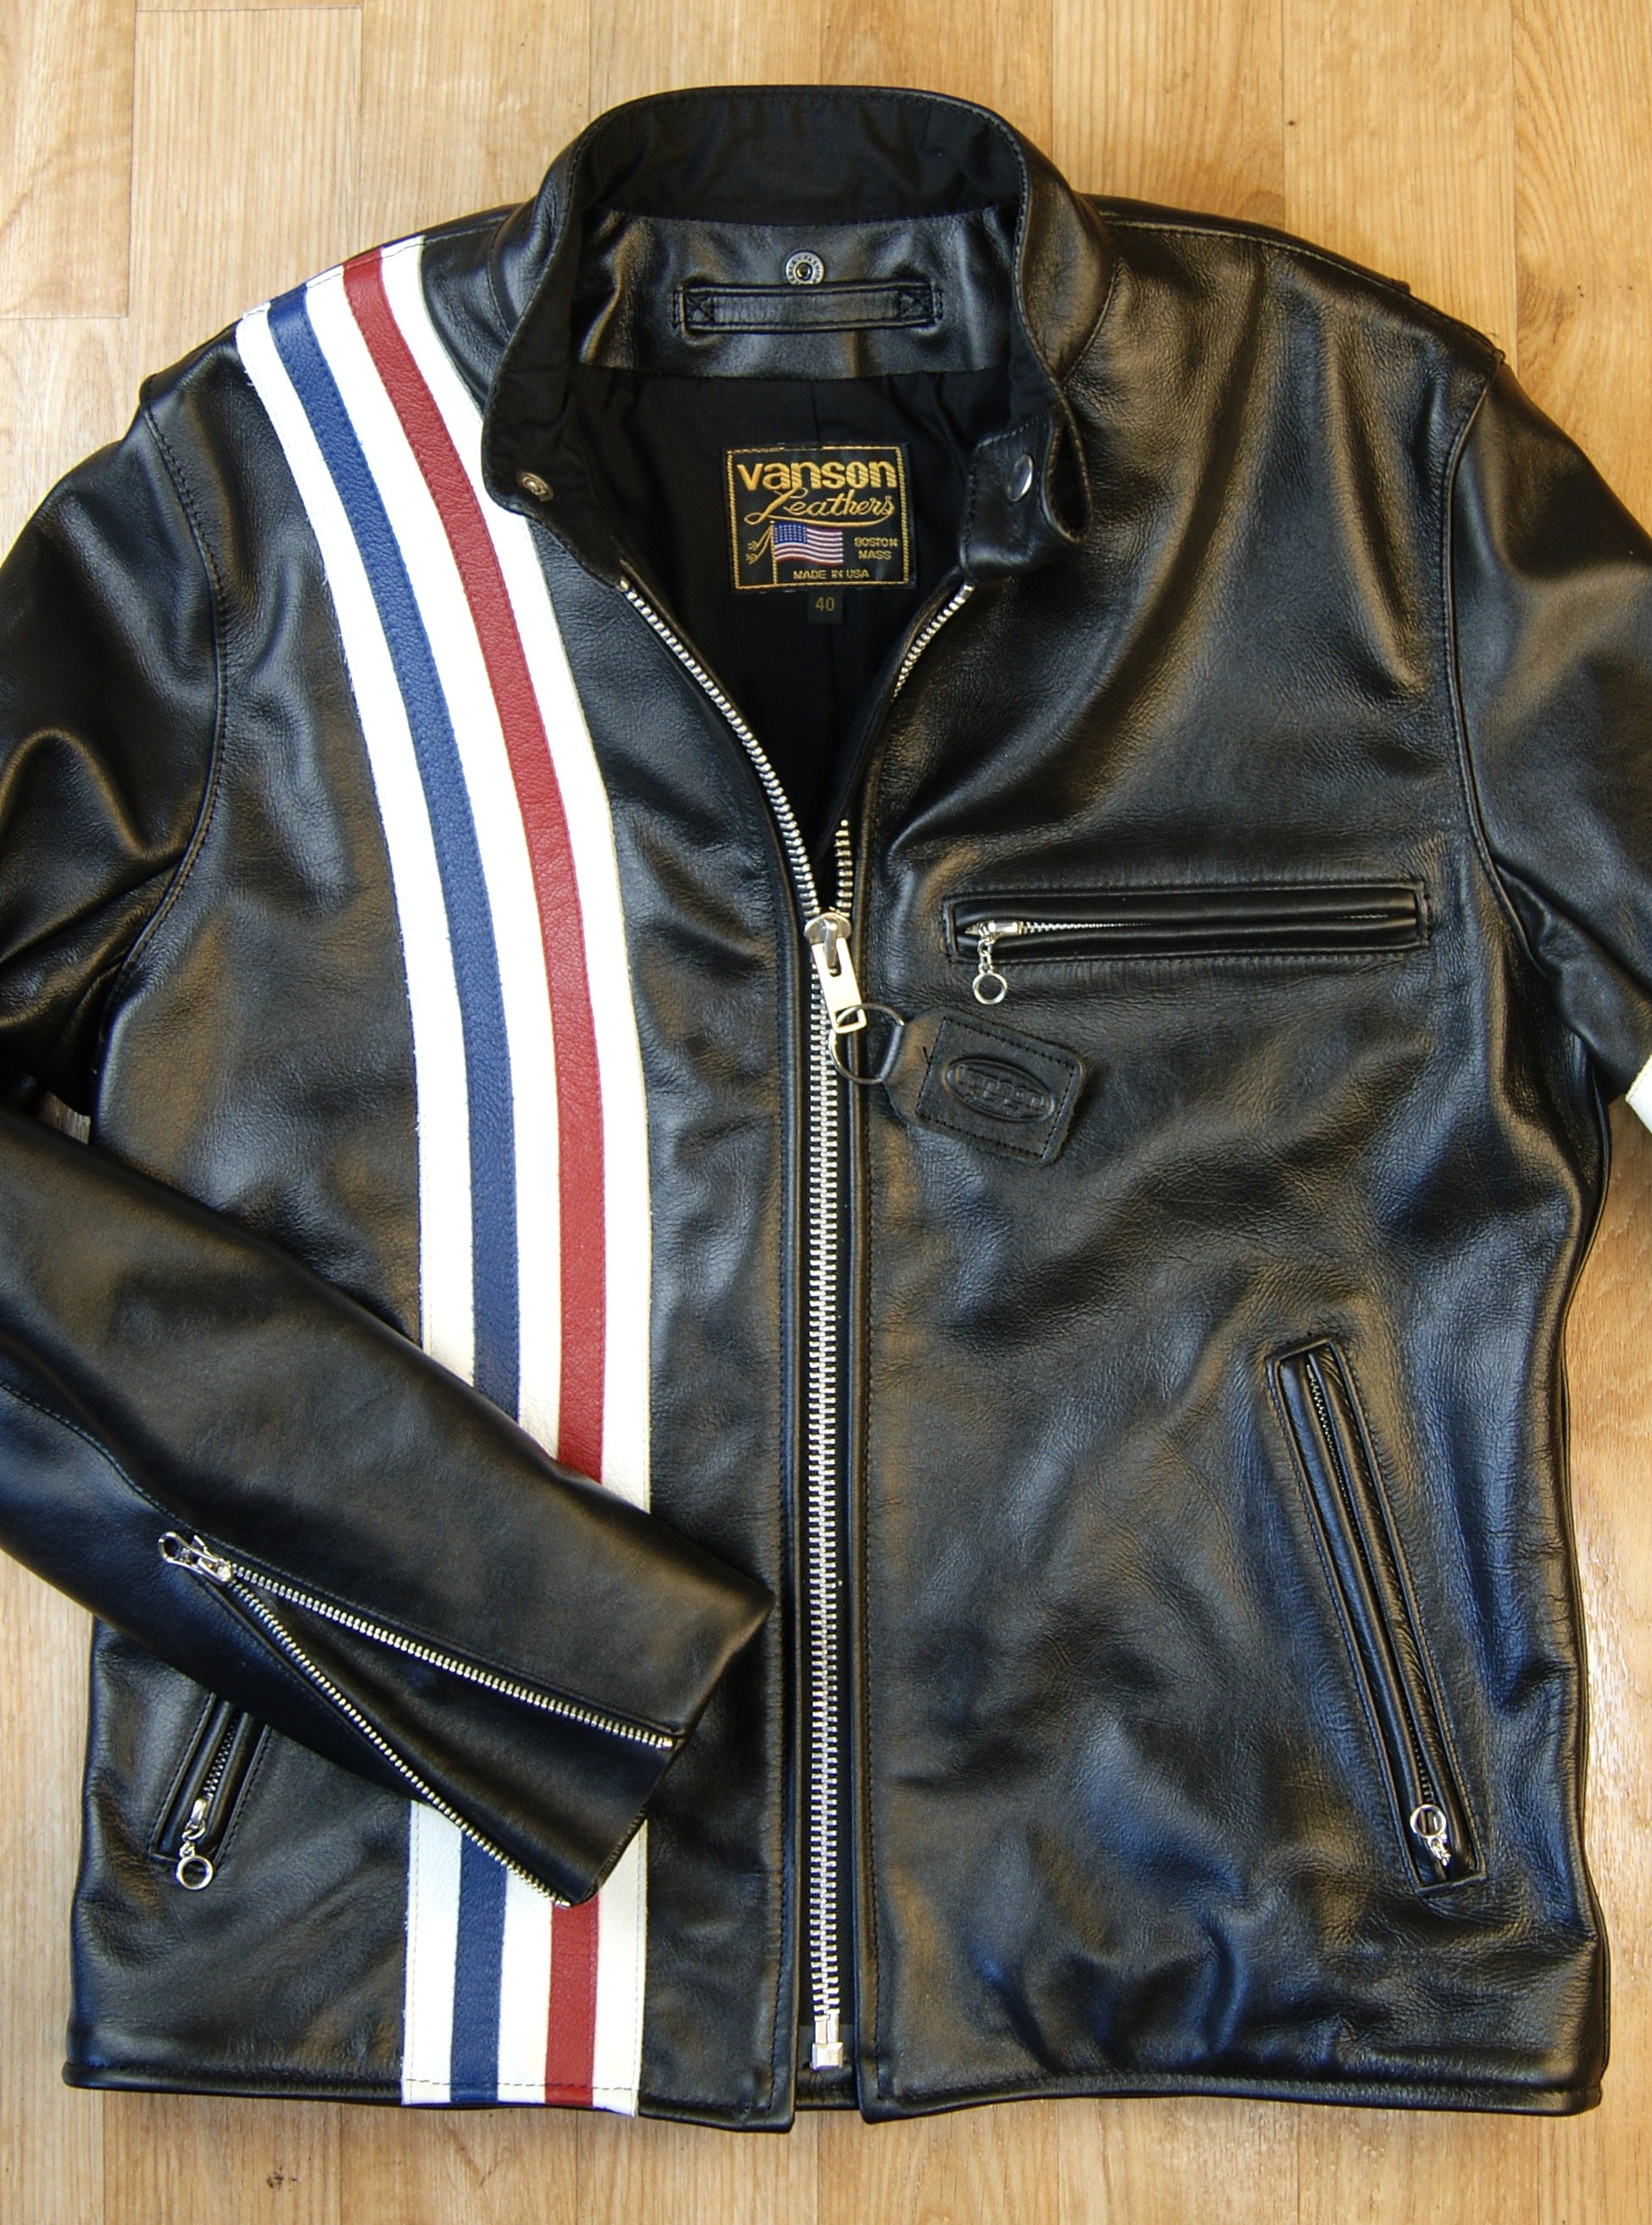 Front of black leather motorcycle jacket.  Right side stripes of red, white and blue.  Left side chest pocket and handwarmer pockets, all with ring pull zippers.